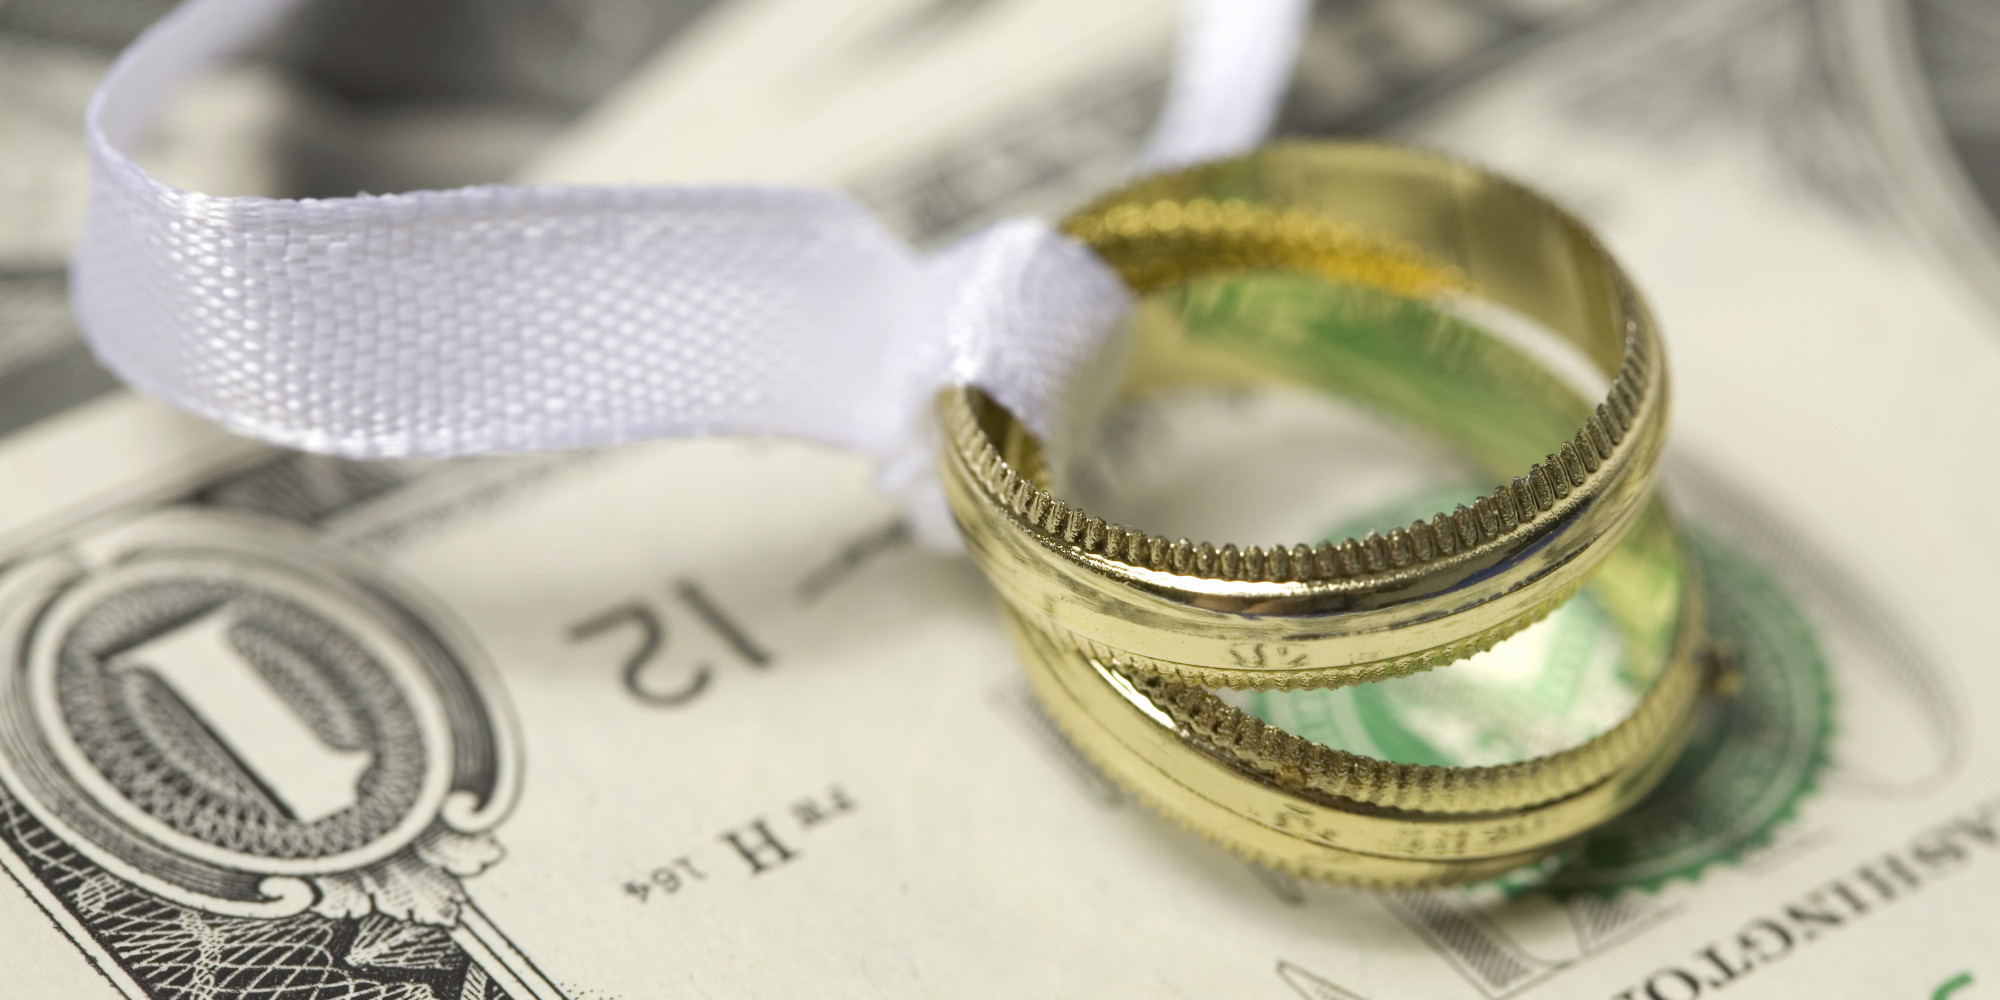 How Much Do I Give For A Wedding Gift: Why Do Weddings Cost SO Much?